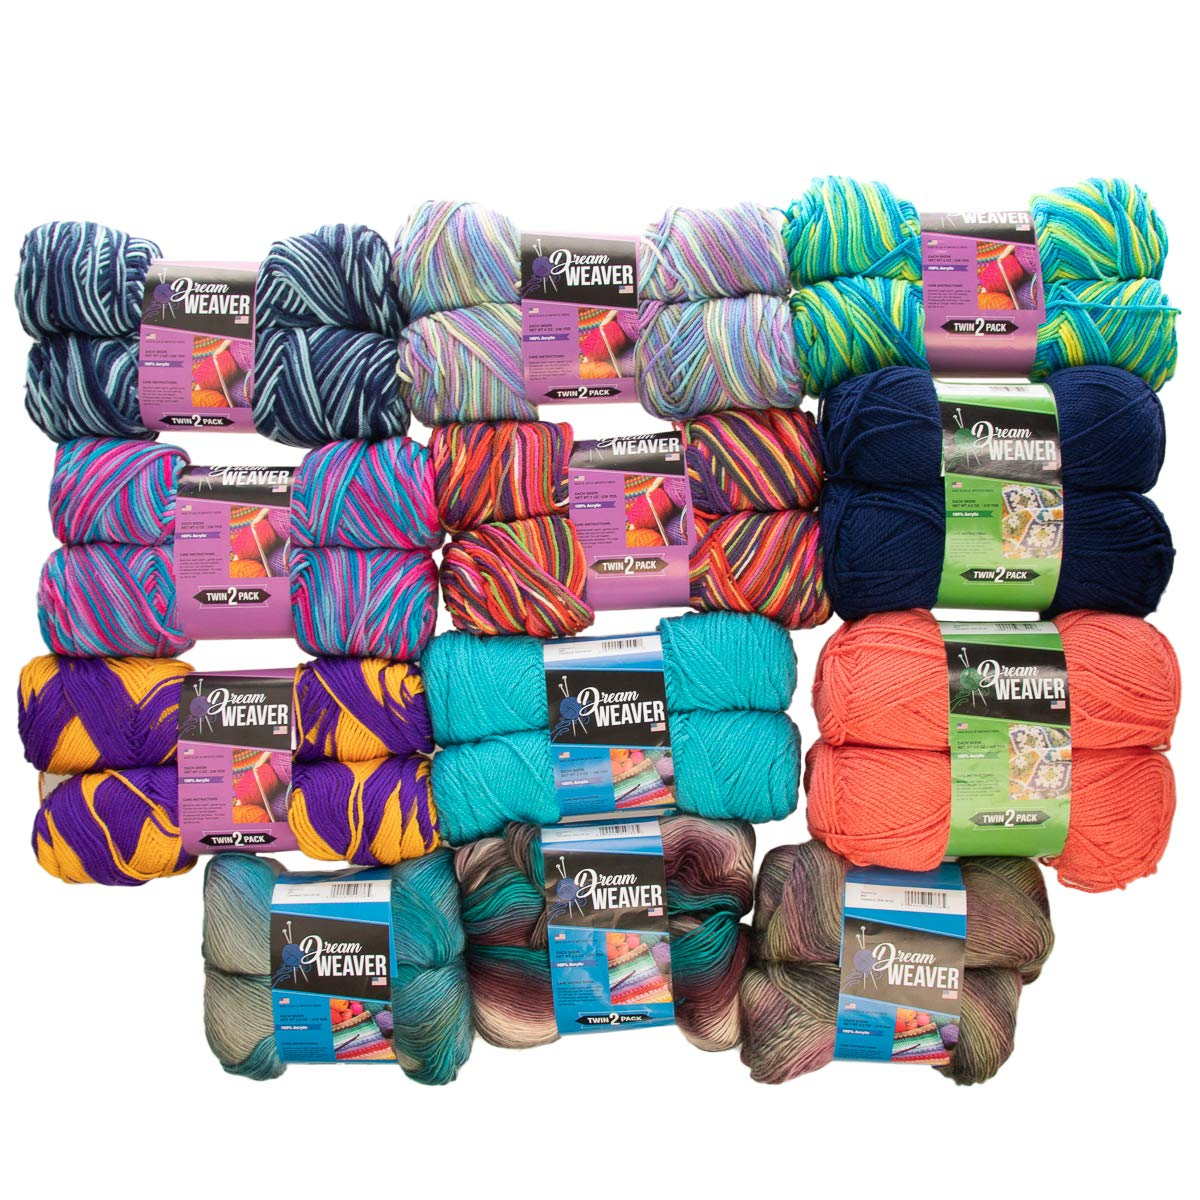 Dream Weaver 24 Count Variety Pack Assorted Color 100% Acrylic Soft Yarn for Knitting Crocheting